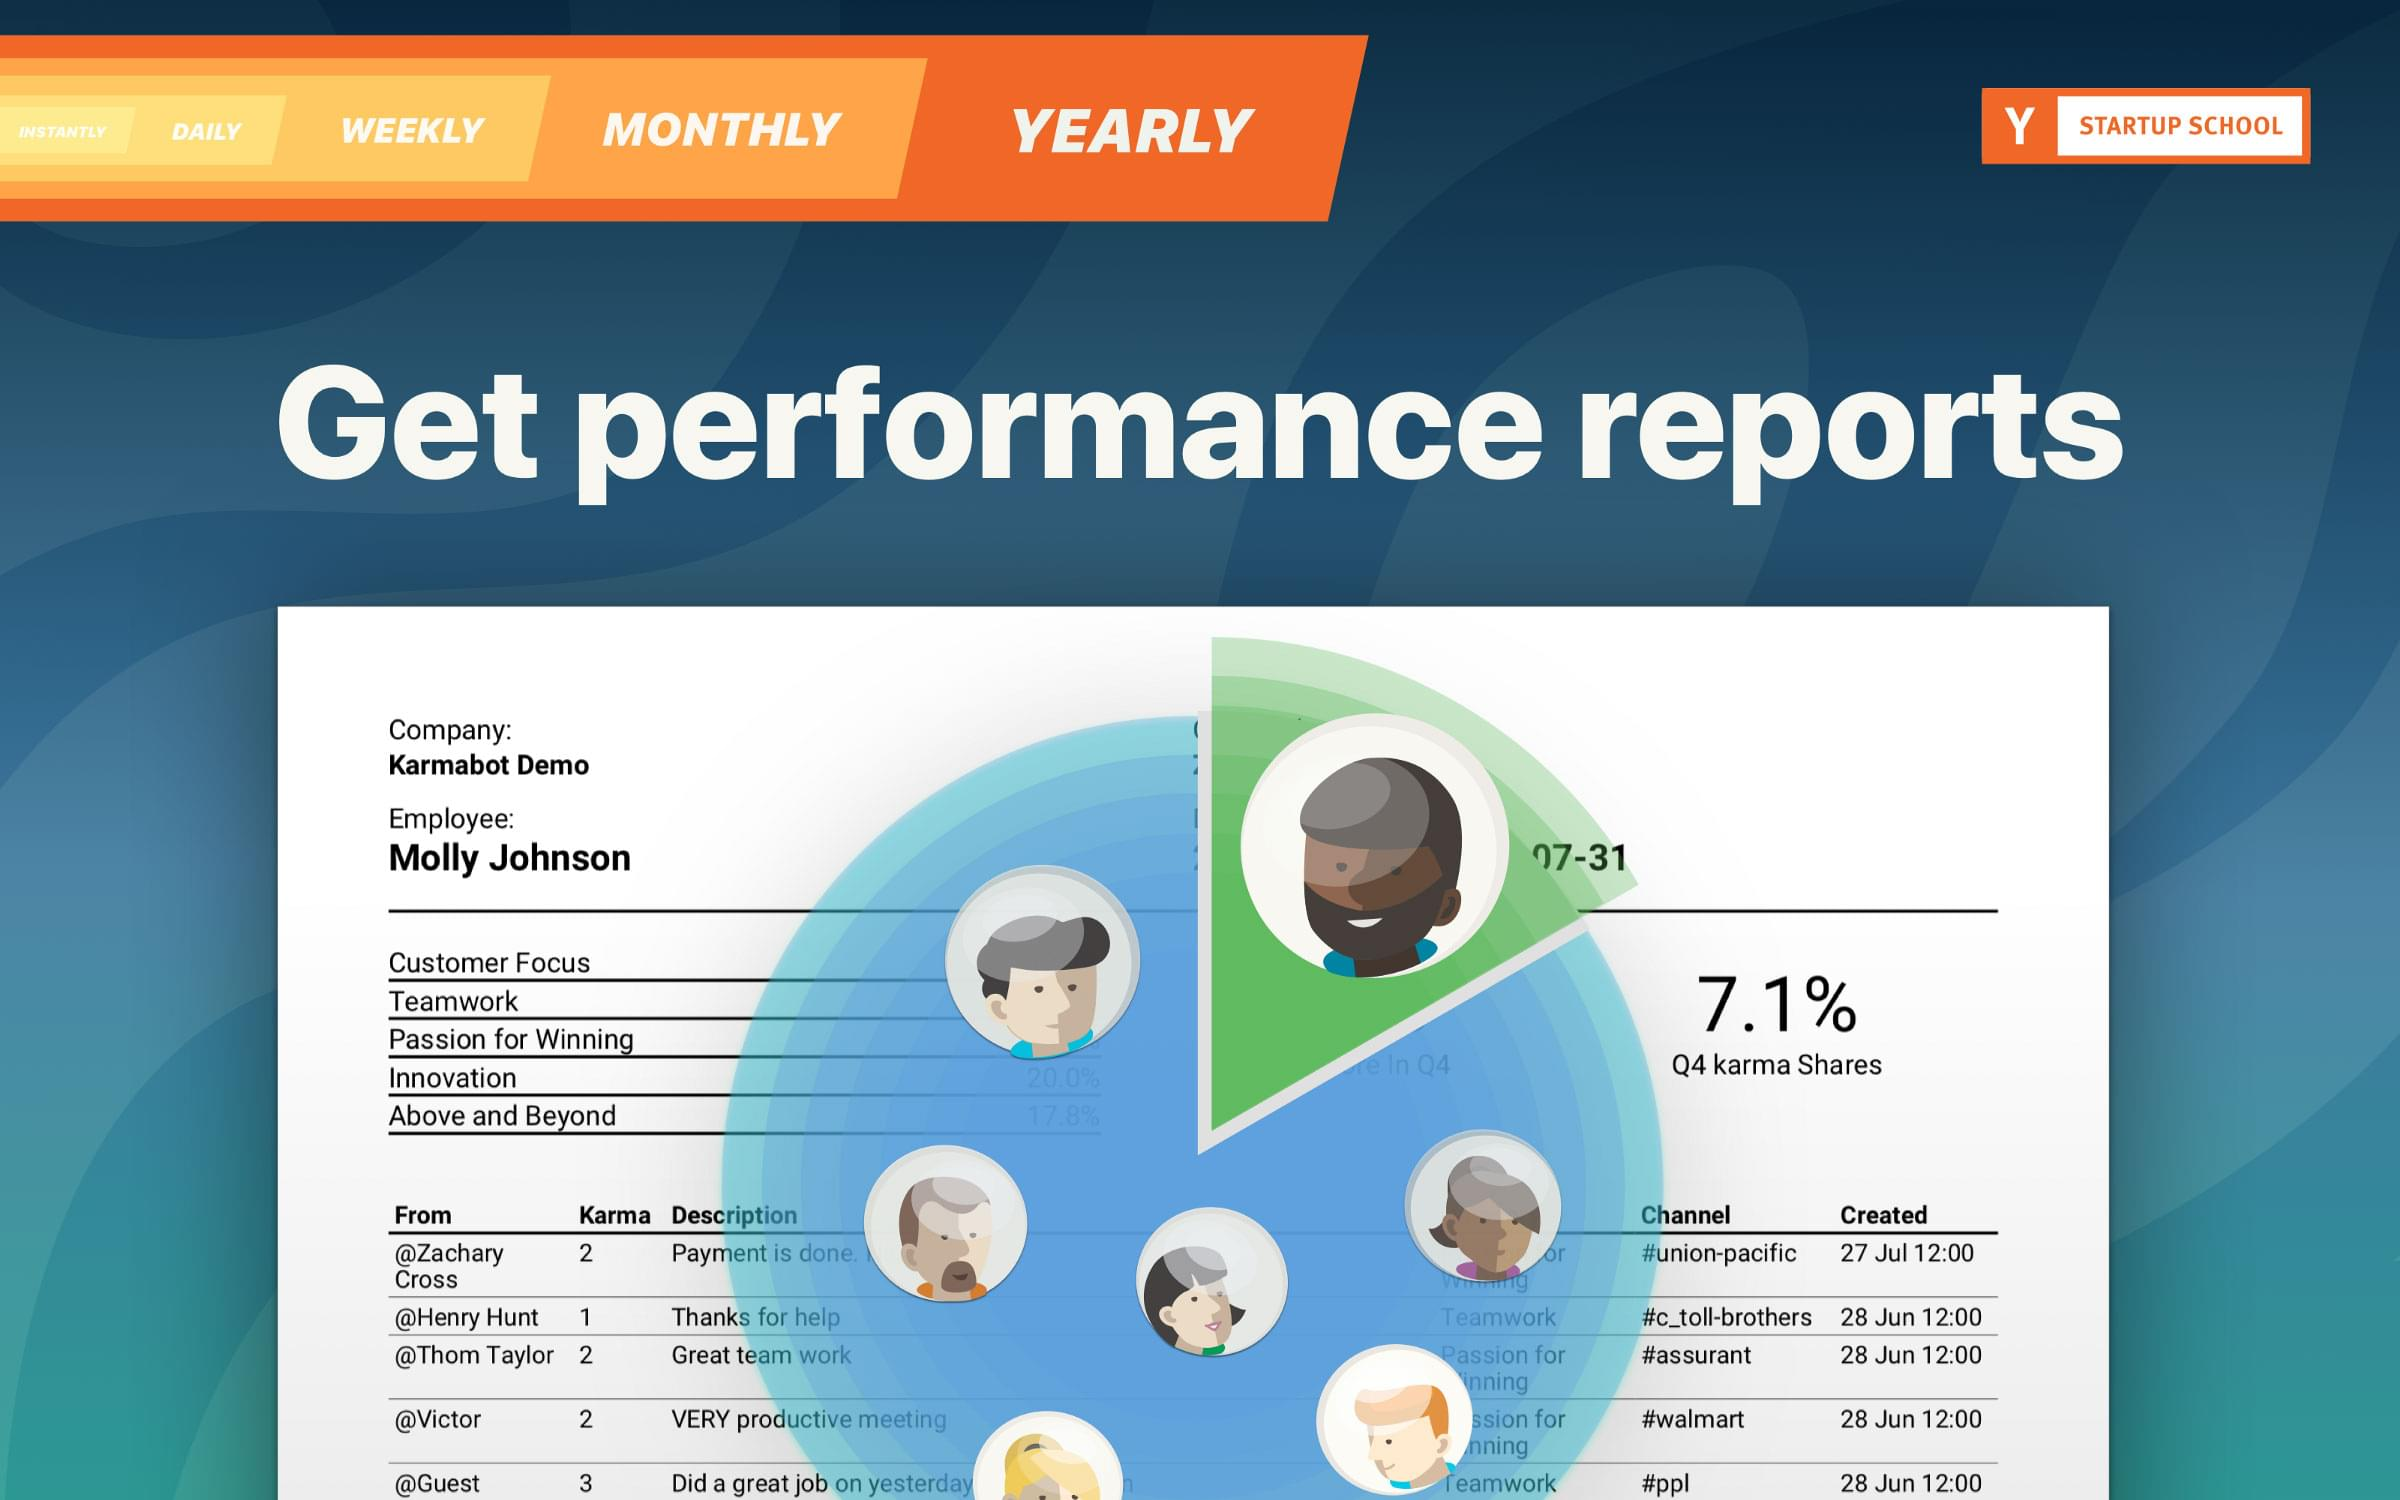 get performace reports